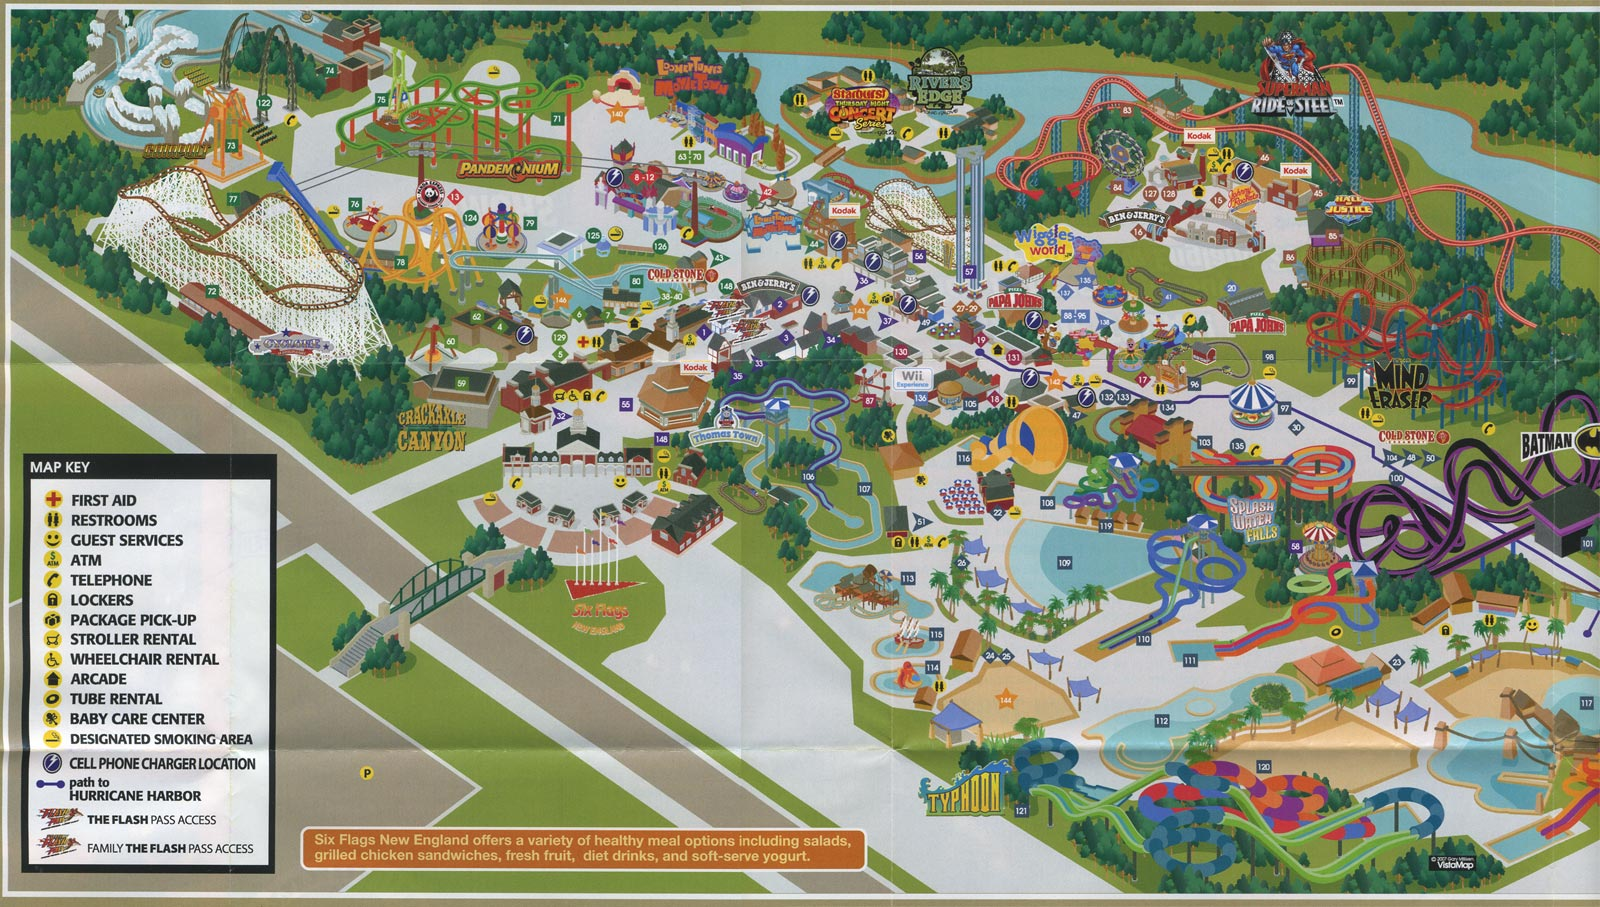 Theme Park Brochures Six Flags New England   Theme Park Brochures